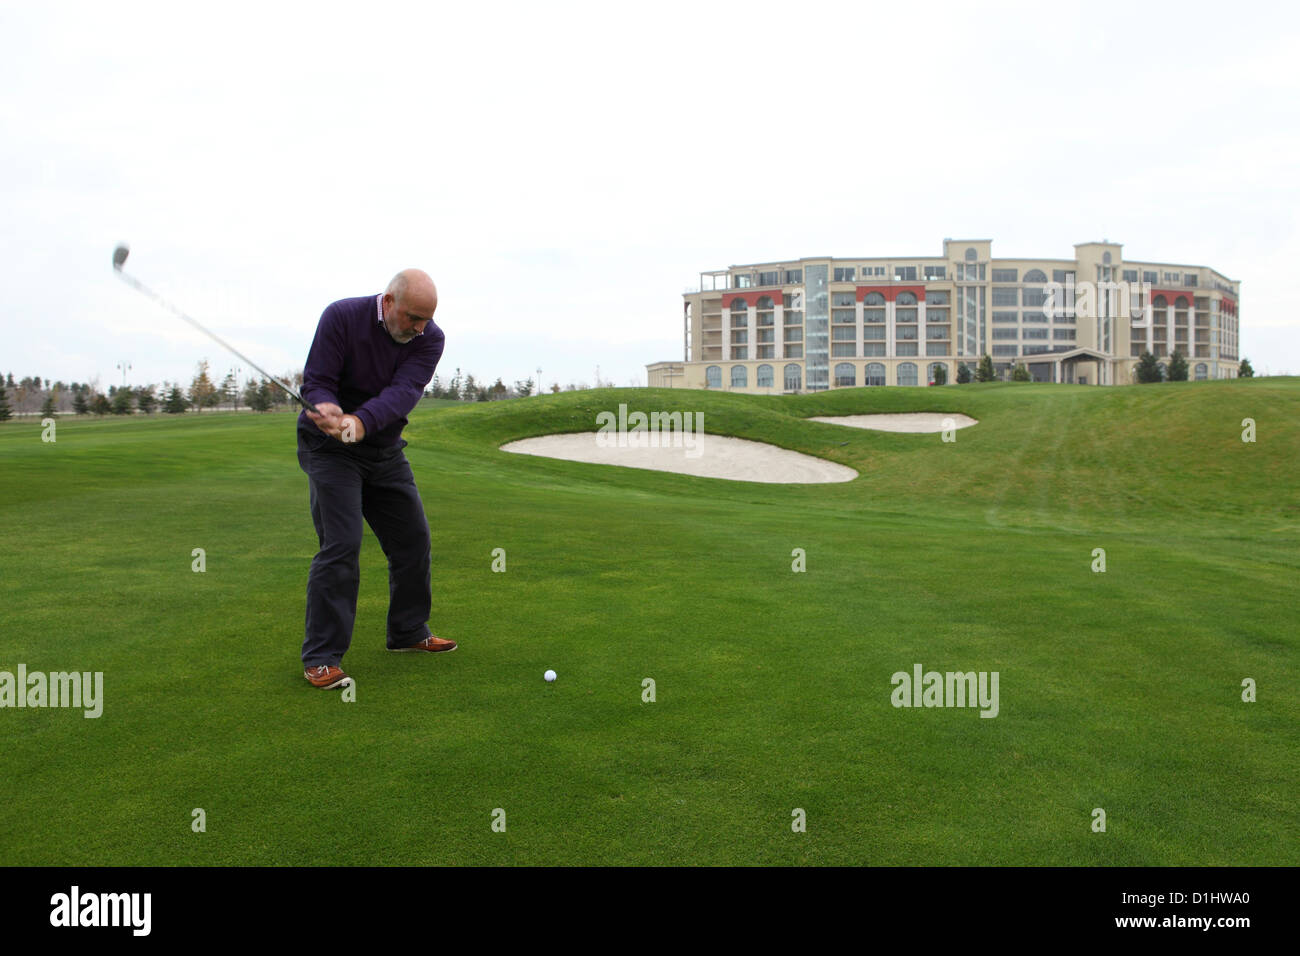 A man plays golf on the Lighthouse Golf Course close to Balchik, Bulgaria. - Stock Image